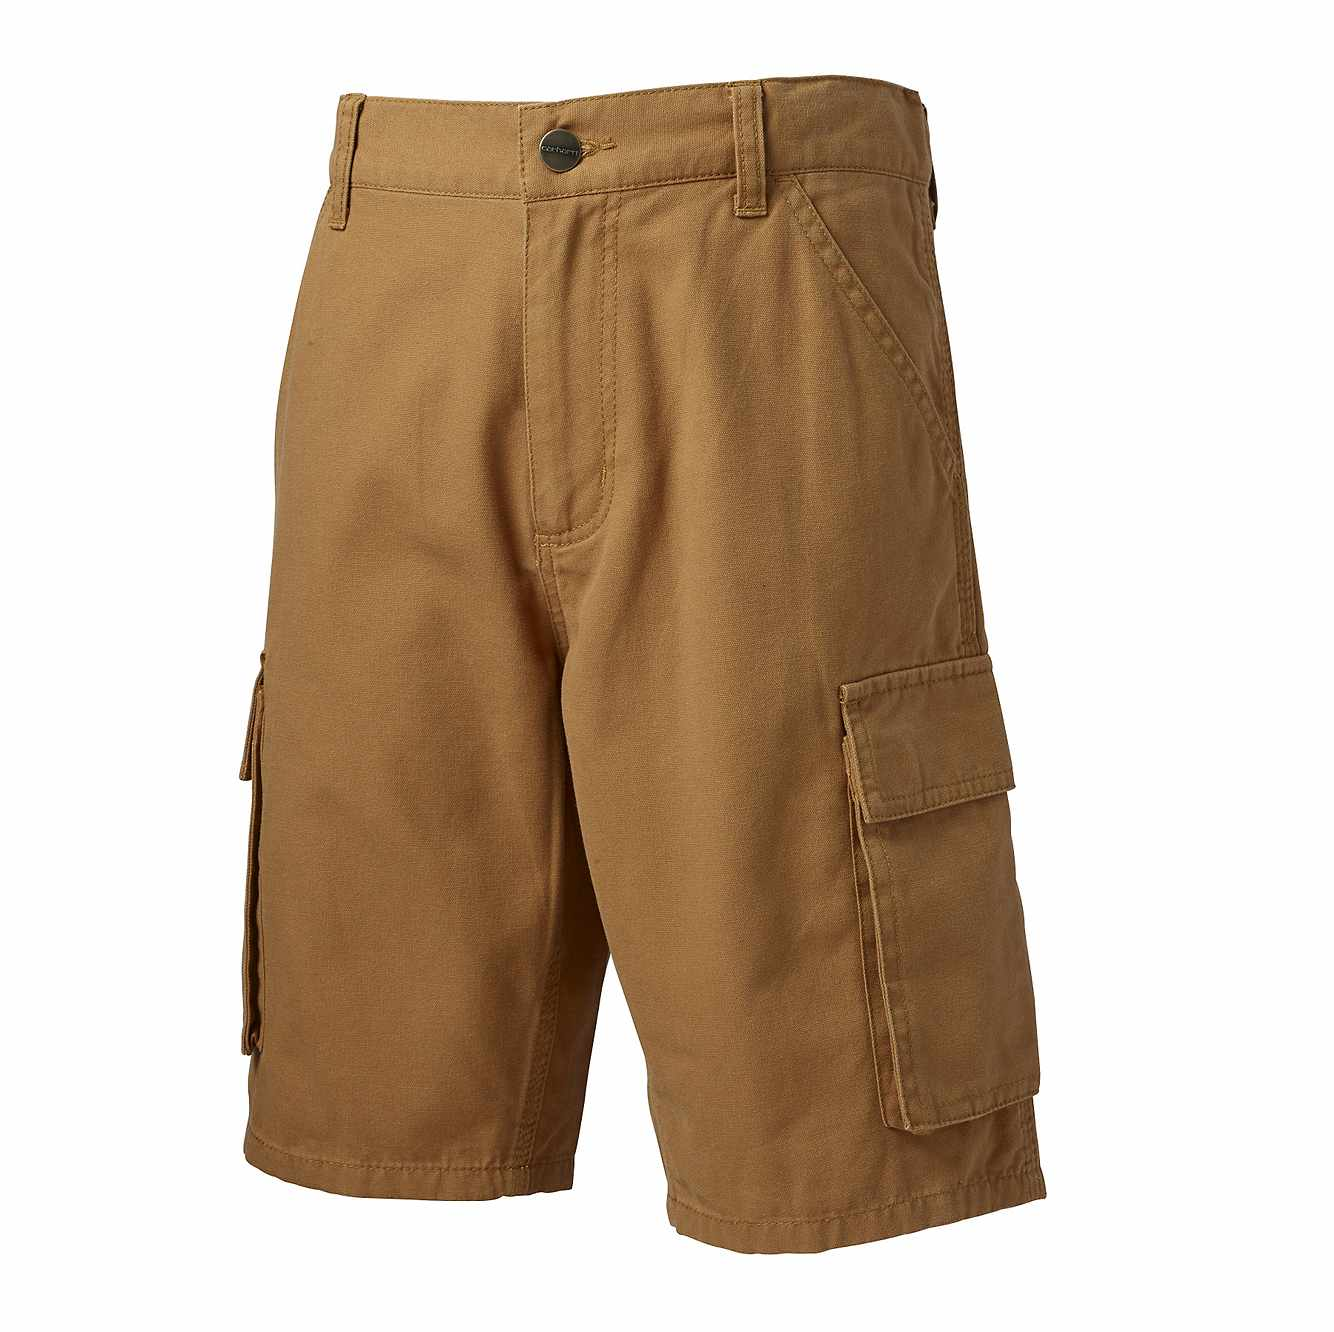 Picture of Canvas Cargo Short in Carhartt Brown